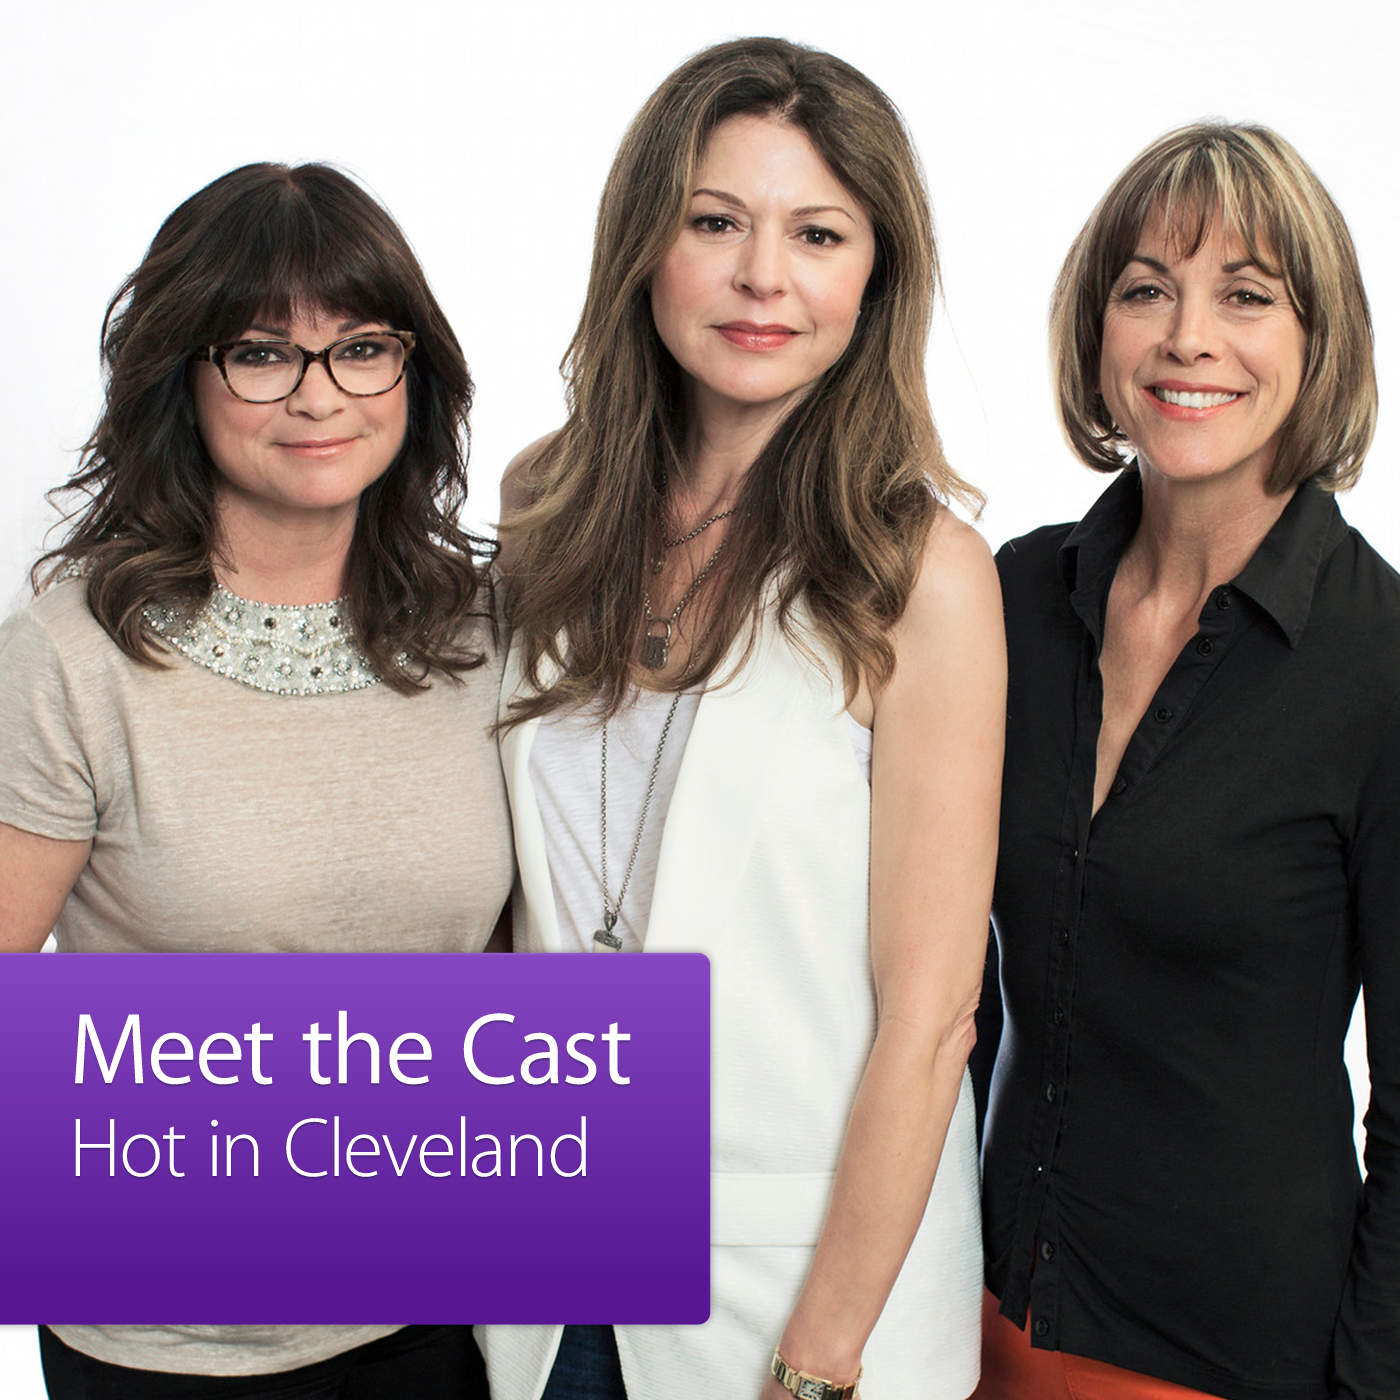 Hot in Cleveland: Meet the Cast